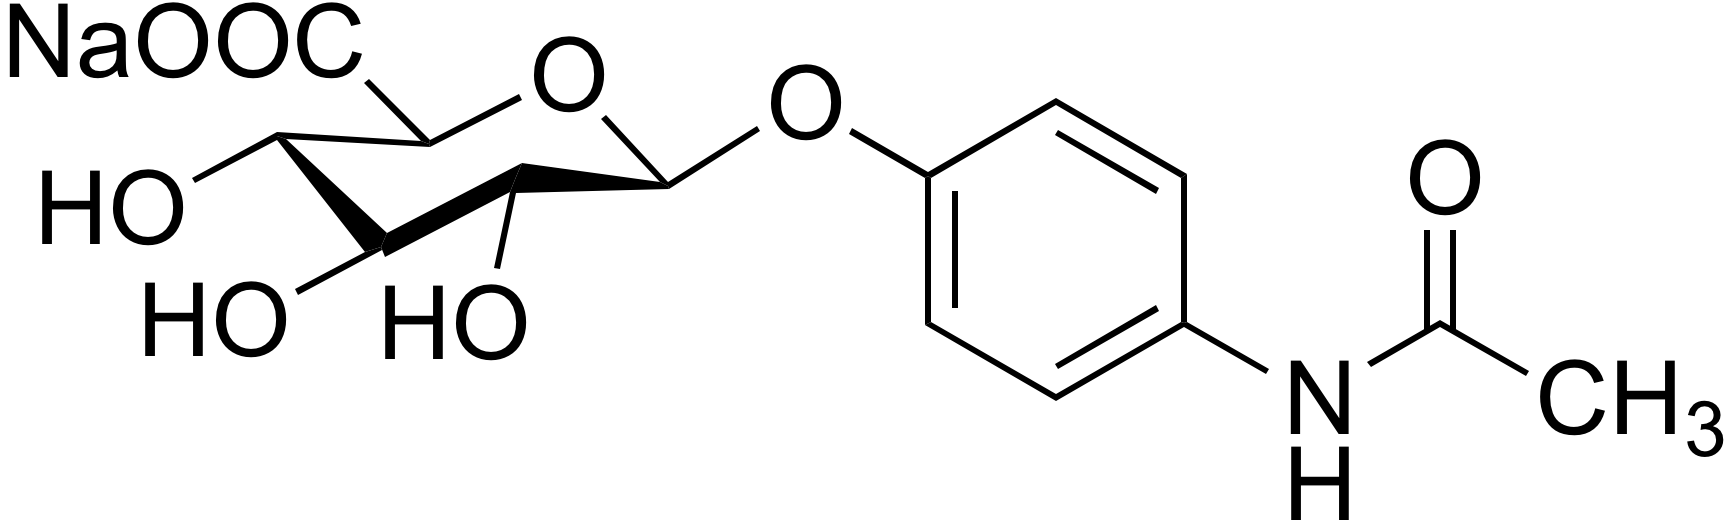 4-Acetamidophenyl β-D-glucuronide sodium salt